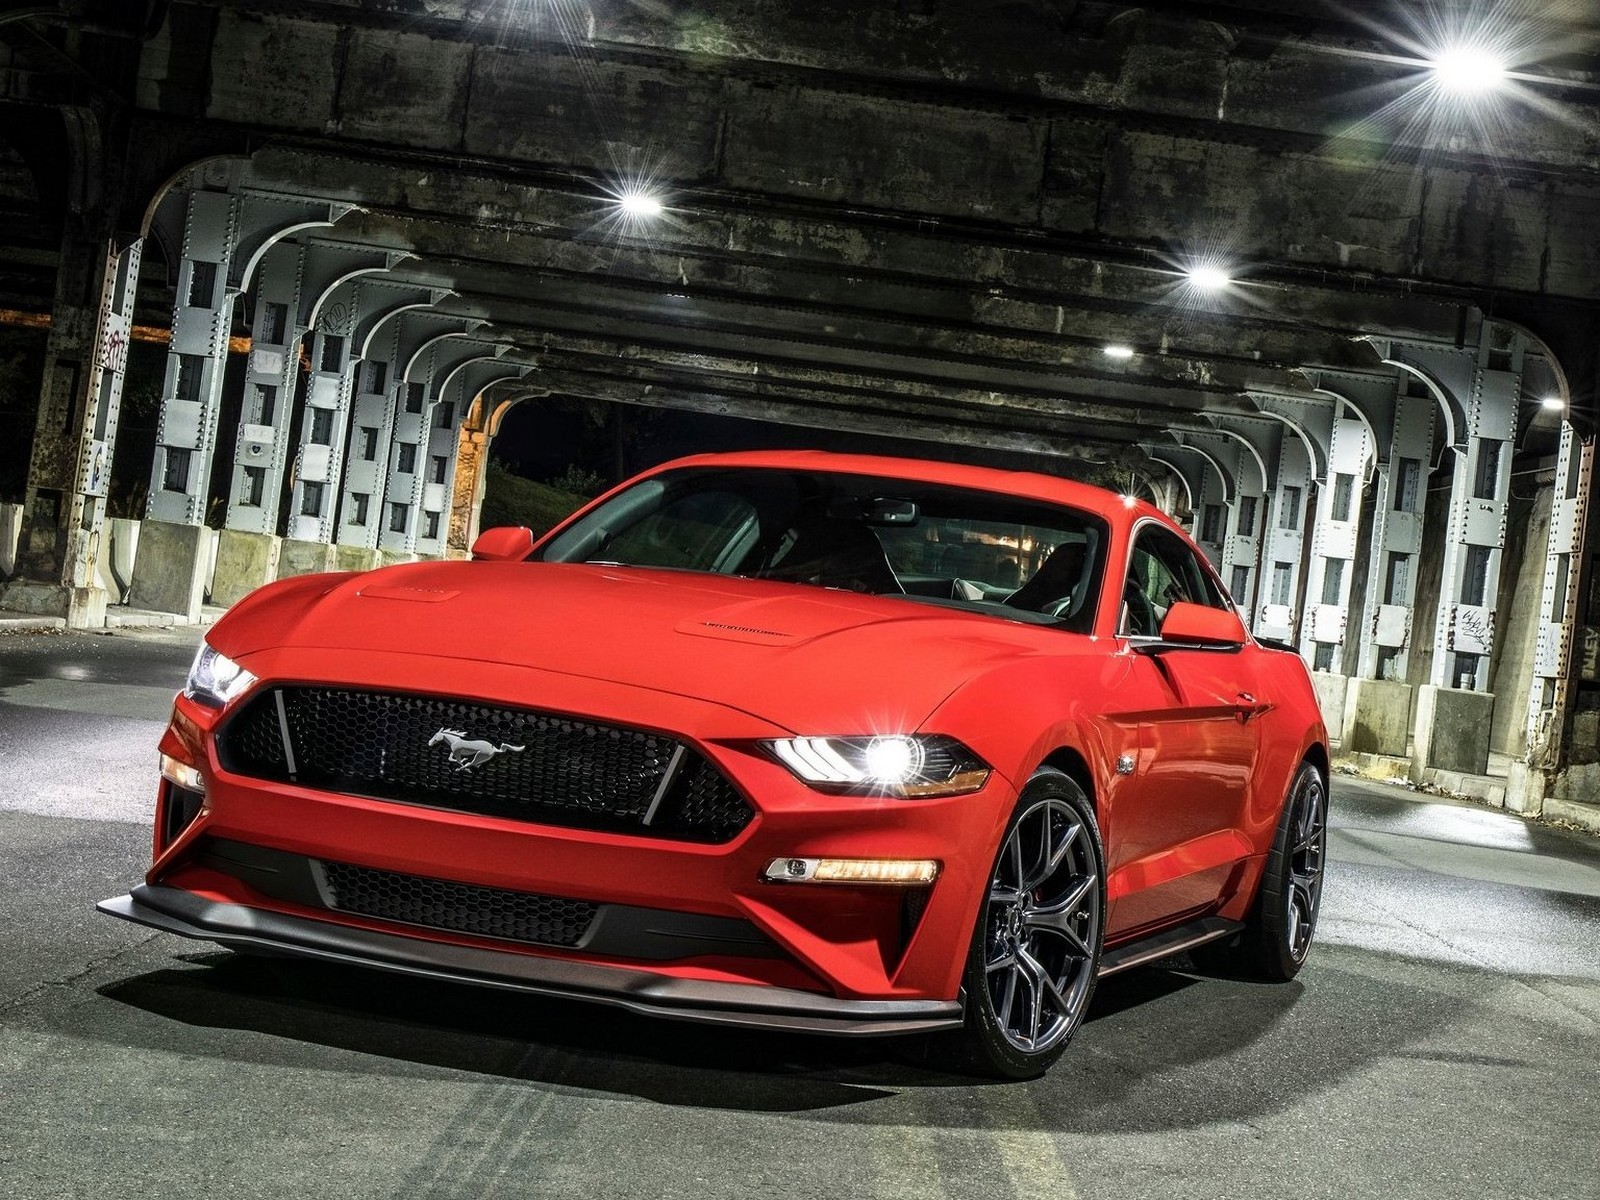 Ford Mustang Gt Performance Pack Level 2 2018 Moteur 5 L